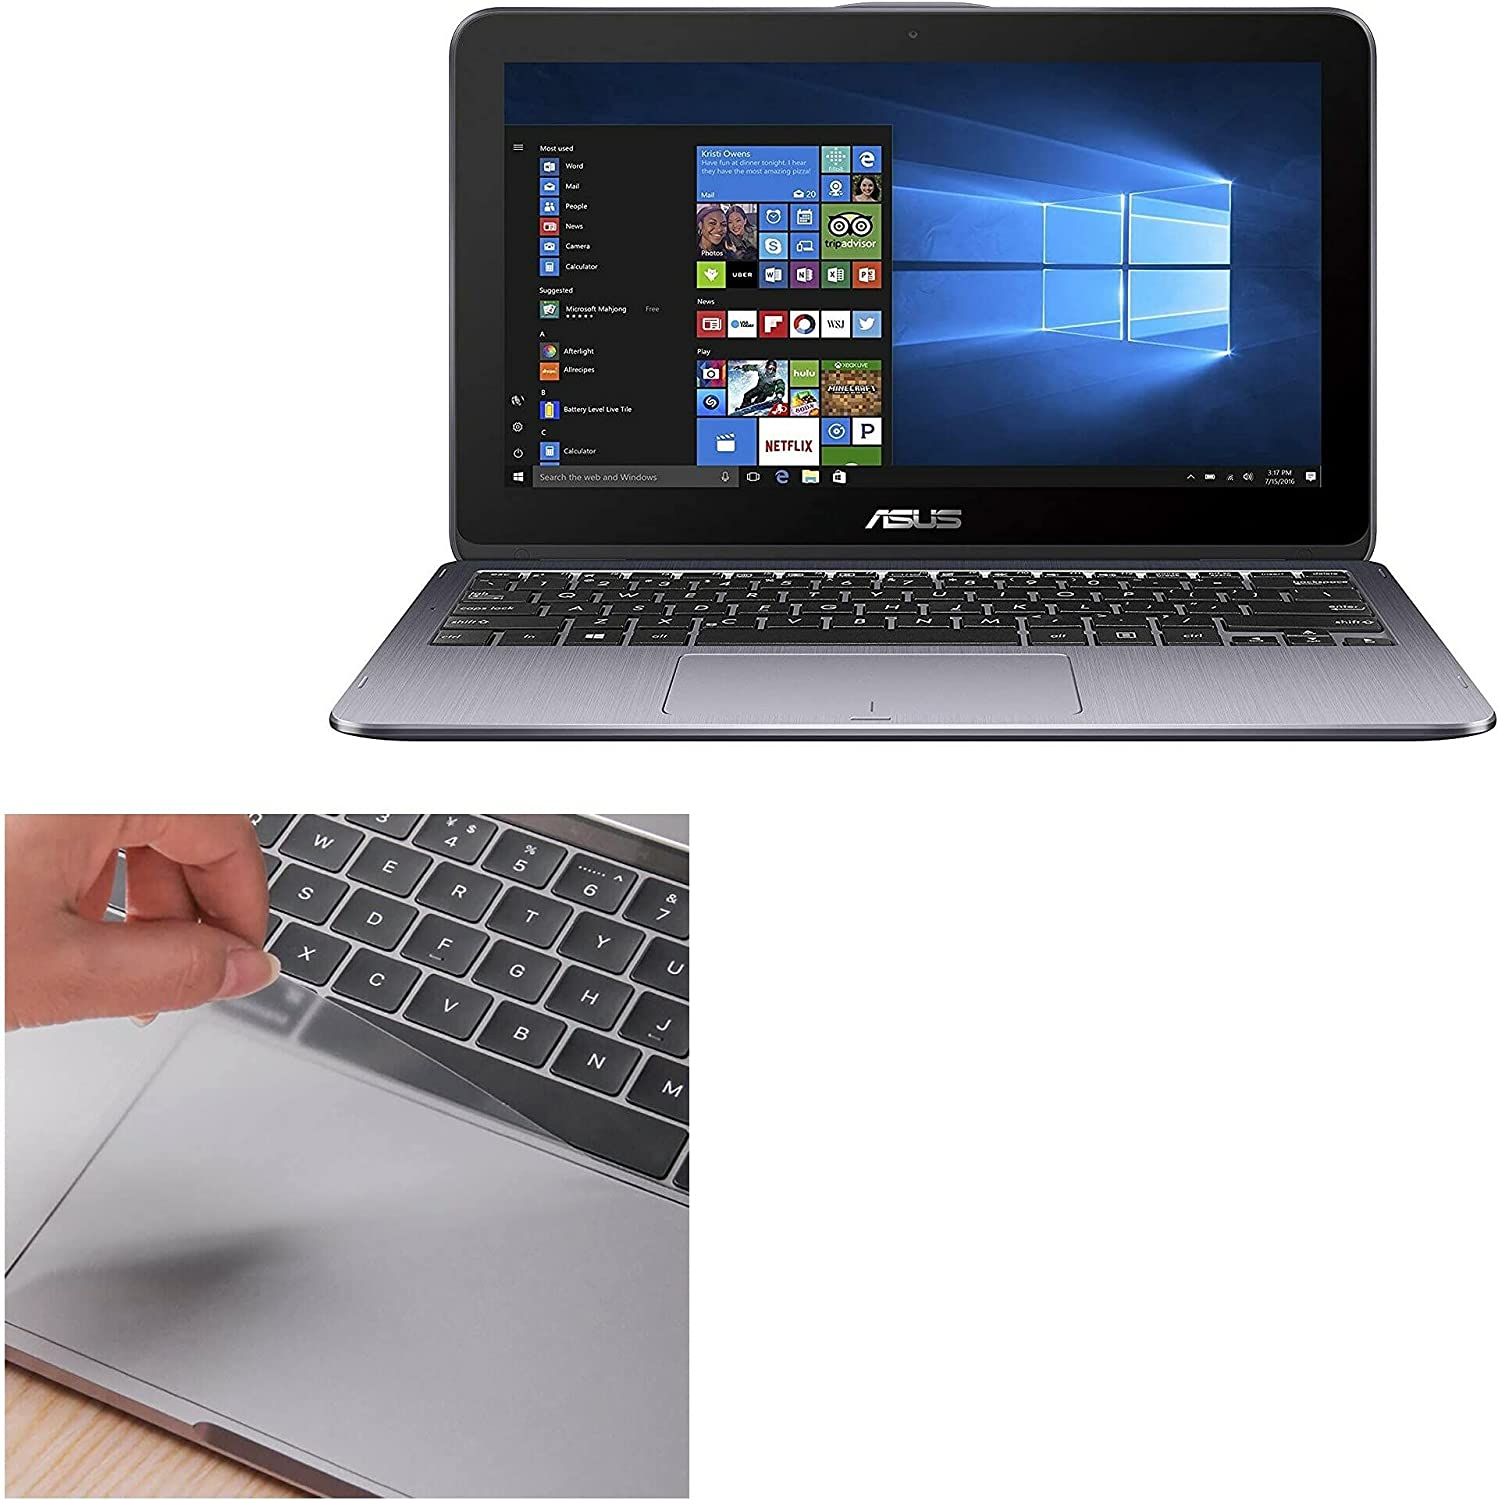 Touchpad Max 71% OFF Protector for ASUS Limited time trial price VivoBook 12 P TP203 Flip